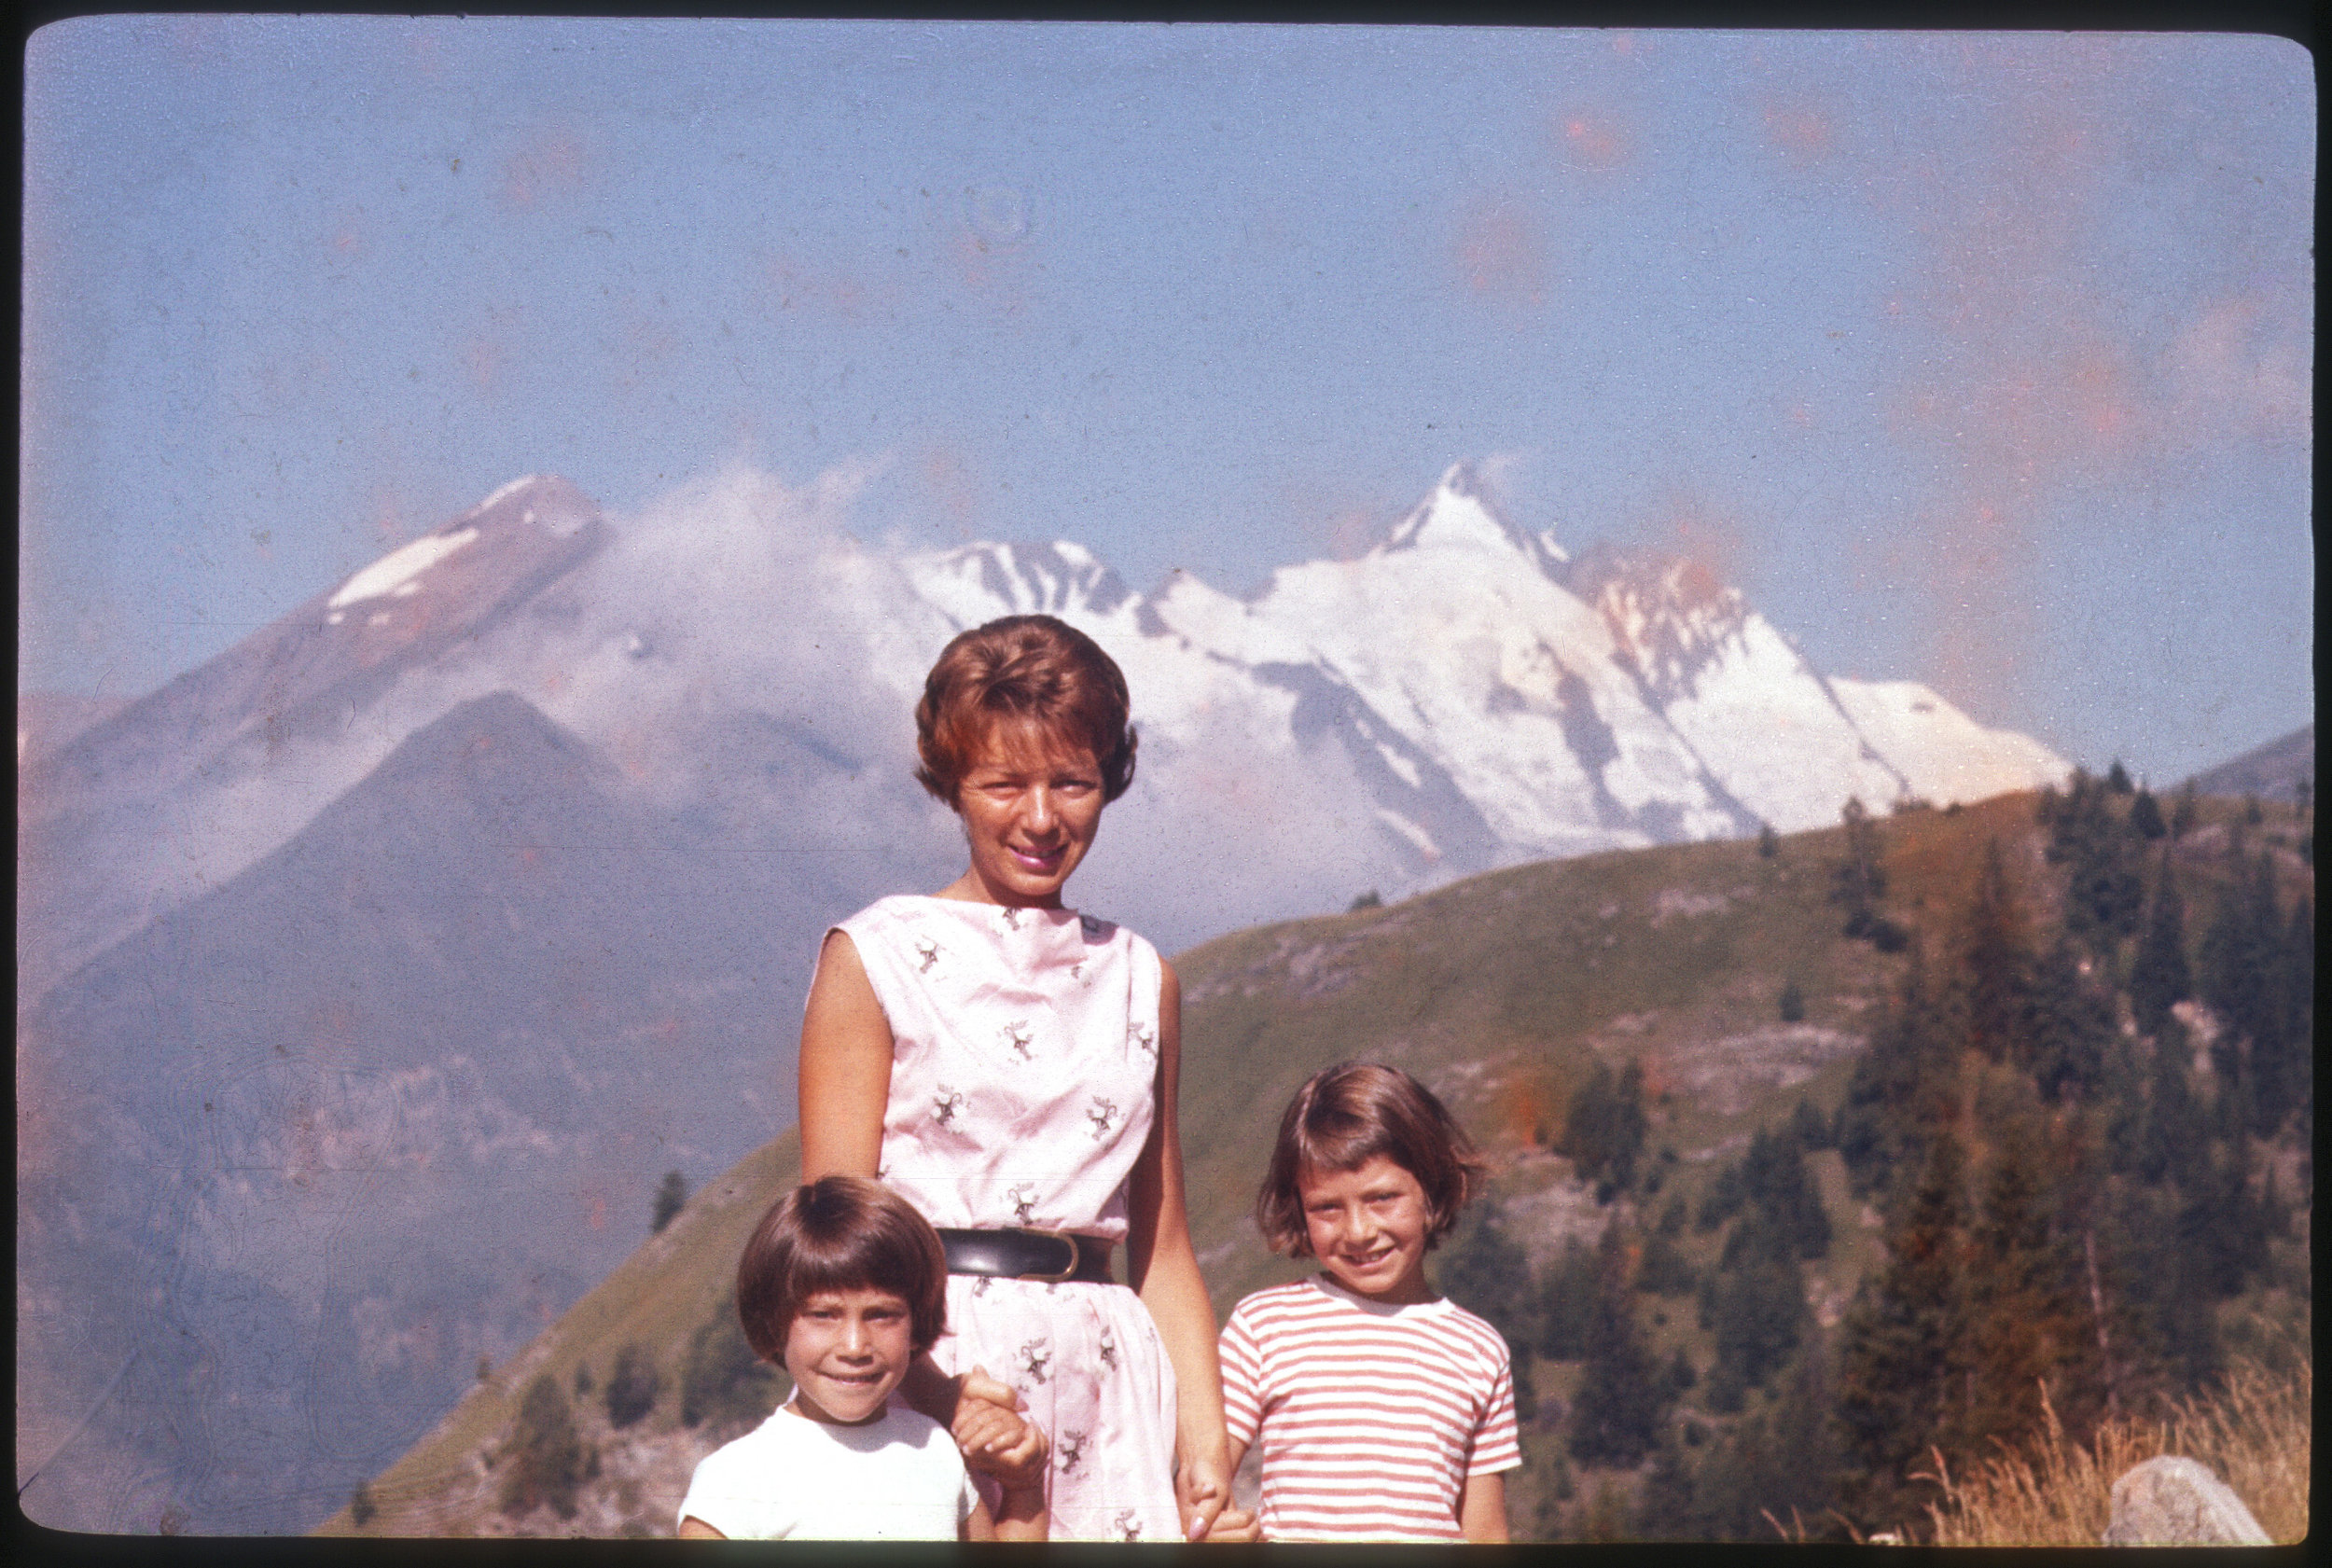 Andrea with her mother and sister, Leslie, in Europe.